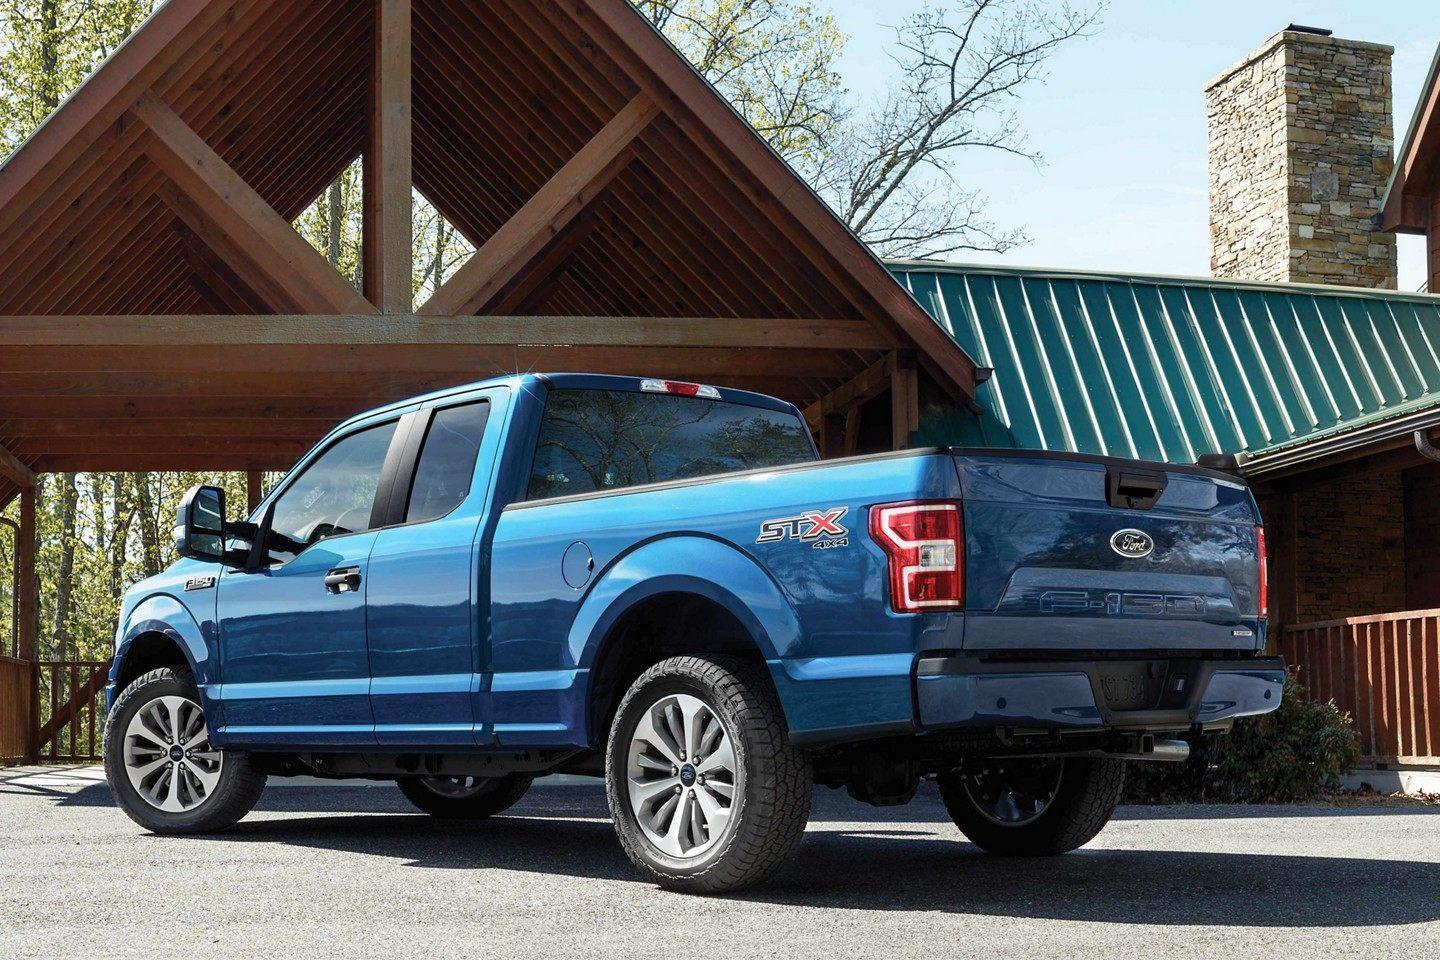 Ford & Lincoln 2019 F-150 image